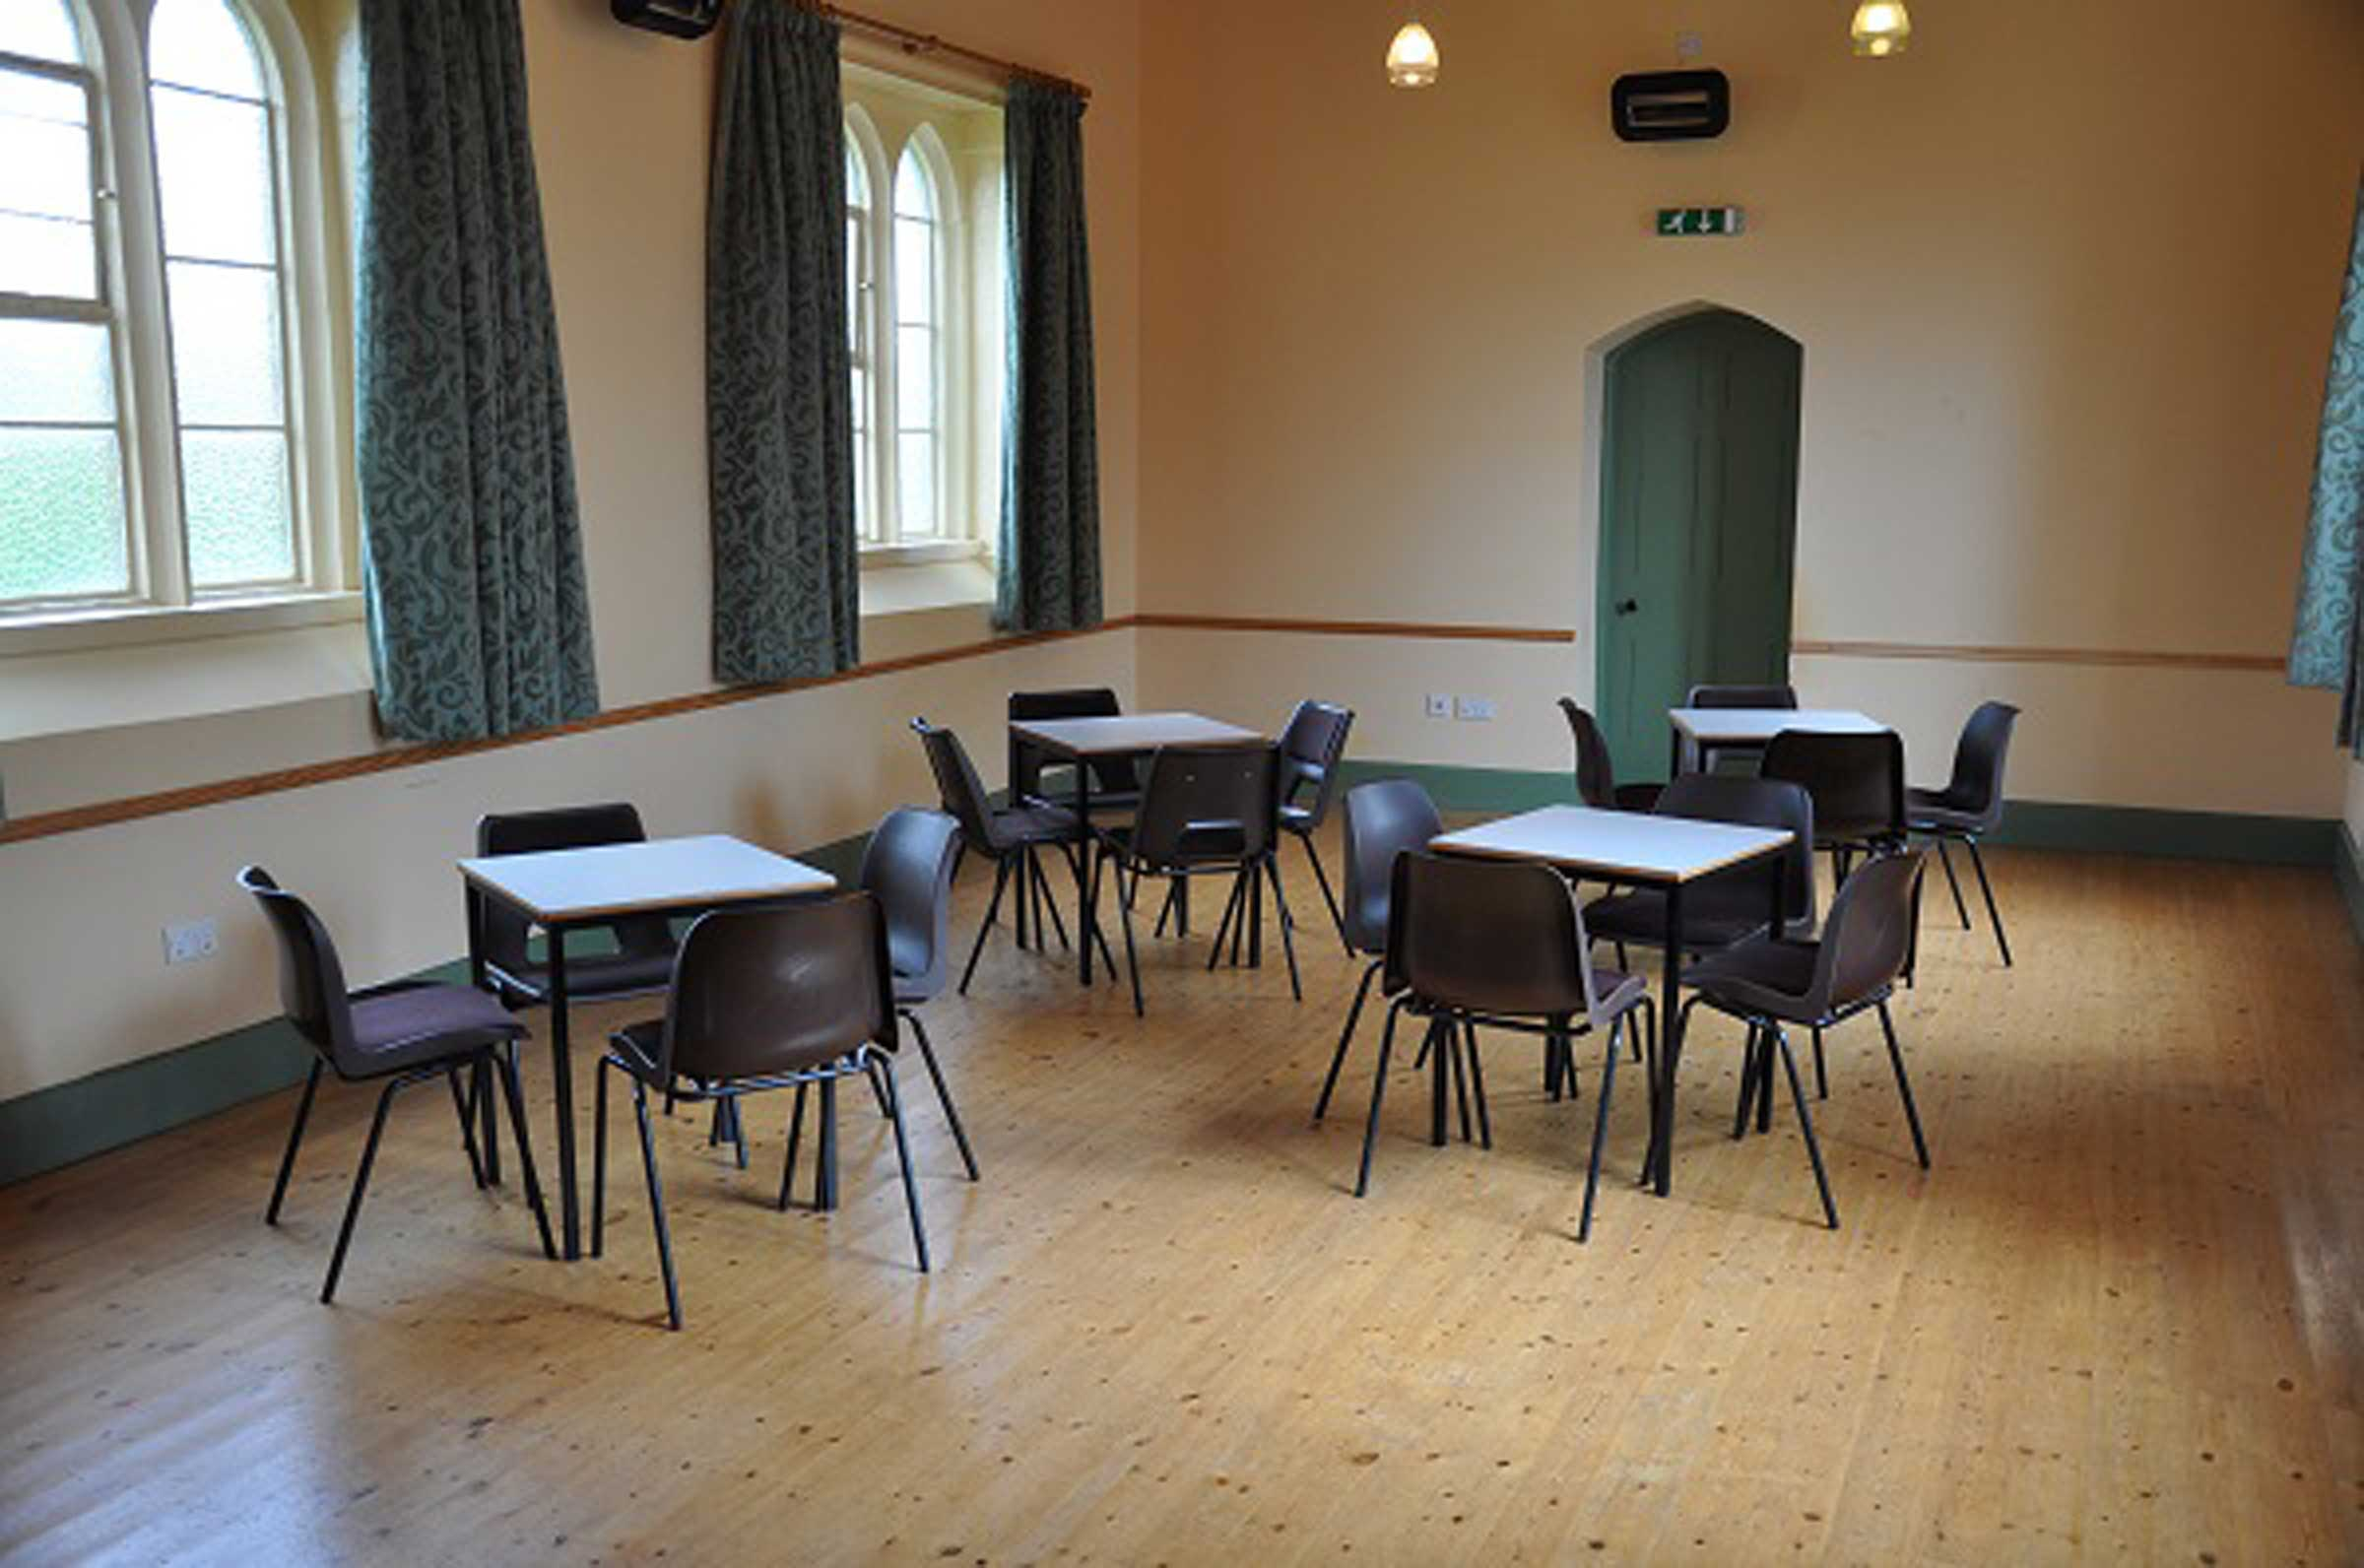 Village Hall Interior Tables